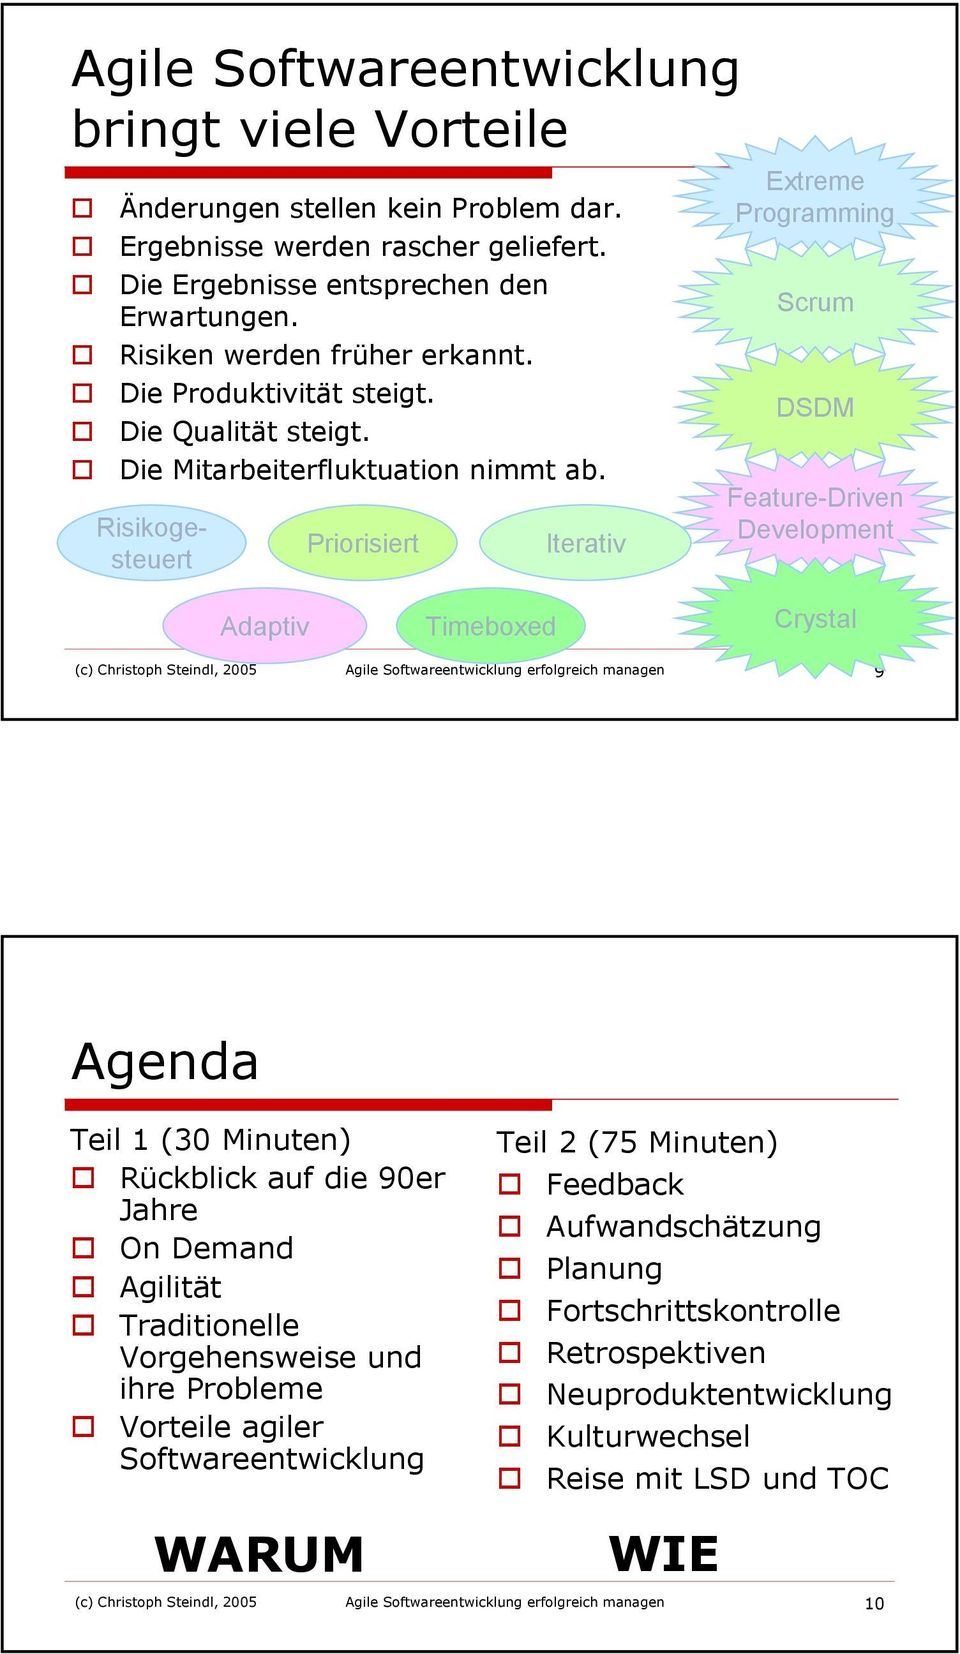 Risikogesteuert Priorisiert Iterativ Extreme Programming Scrum DSDM Feature-Driven Development Adaptiv Timeboxed Crystal (c) Christoph Steindl, 2005 Agile Softwareentwicklung erfolgreich managen 9